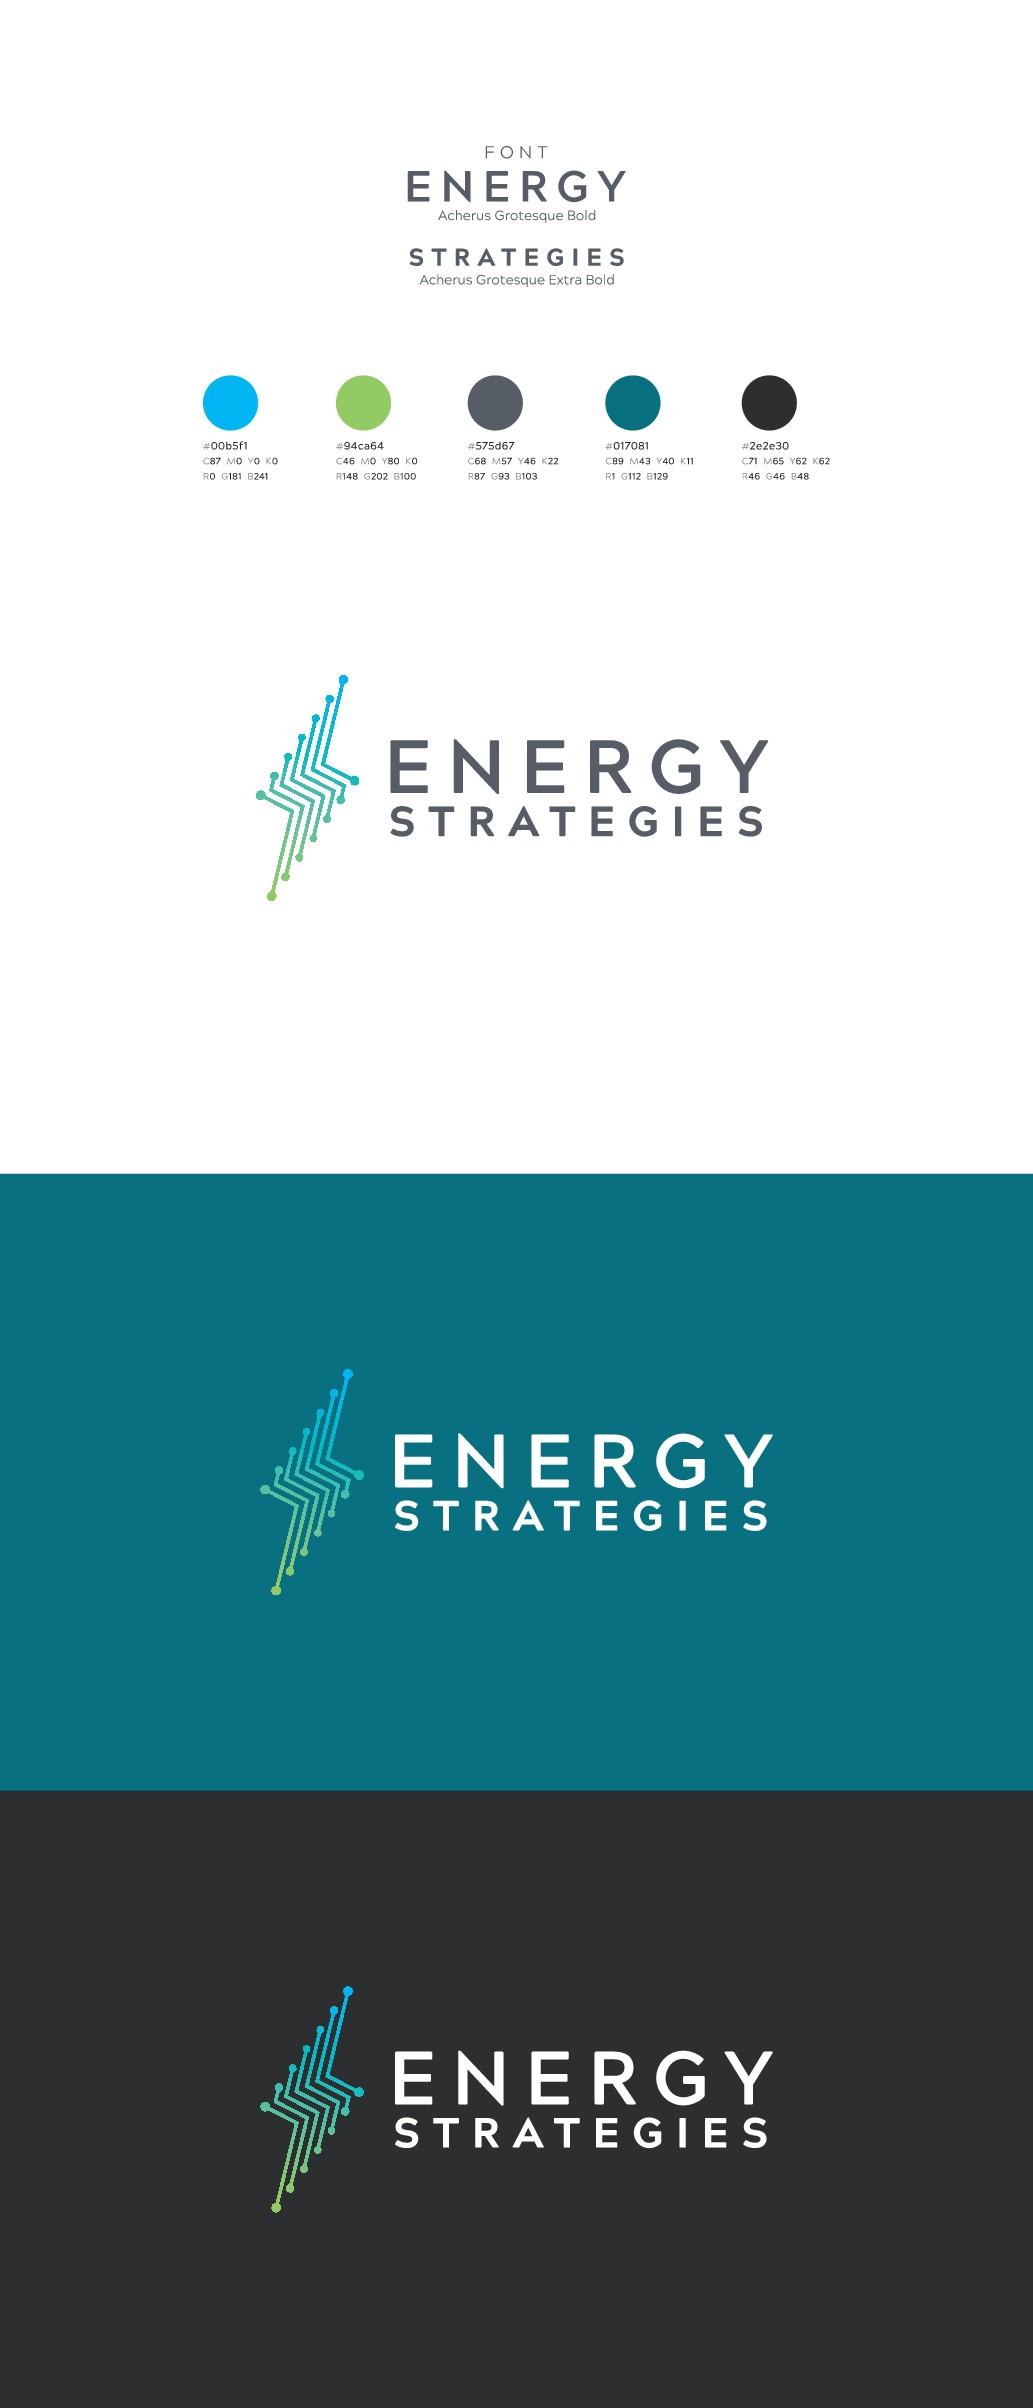 Create a powerful new logo for Energy Strategies, one of the foremost consulting firms in the West